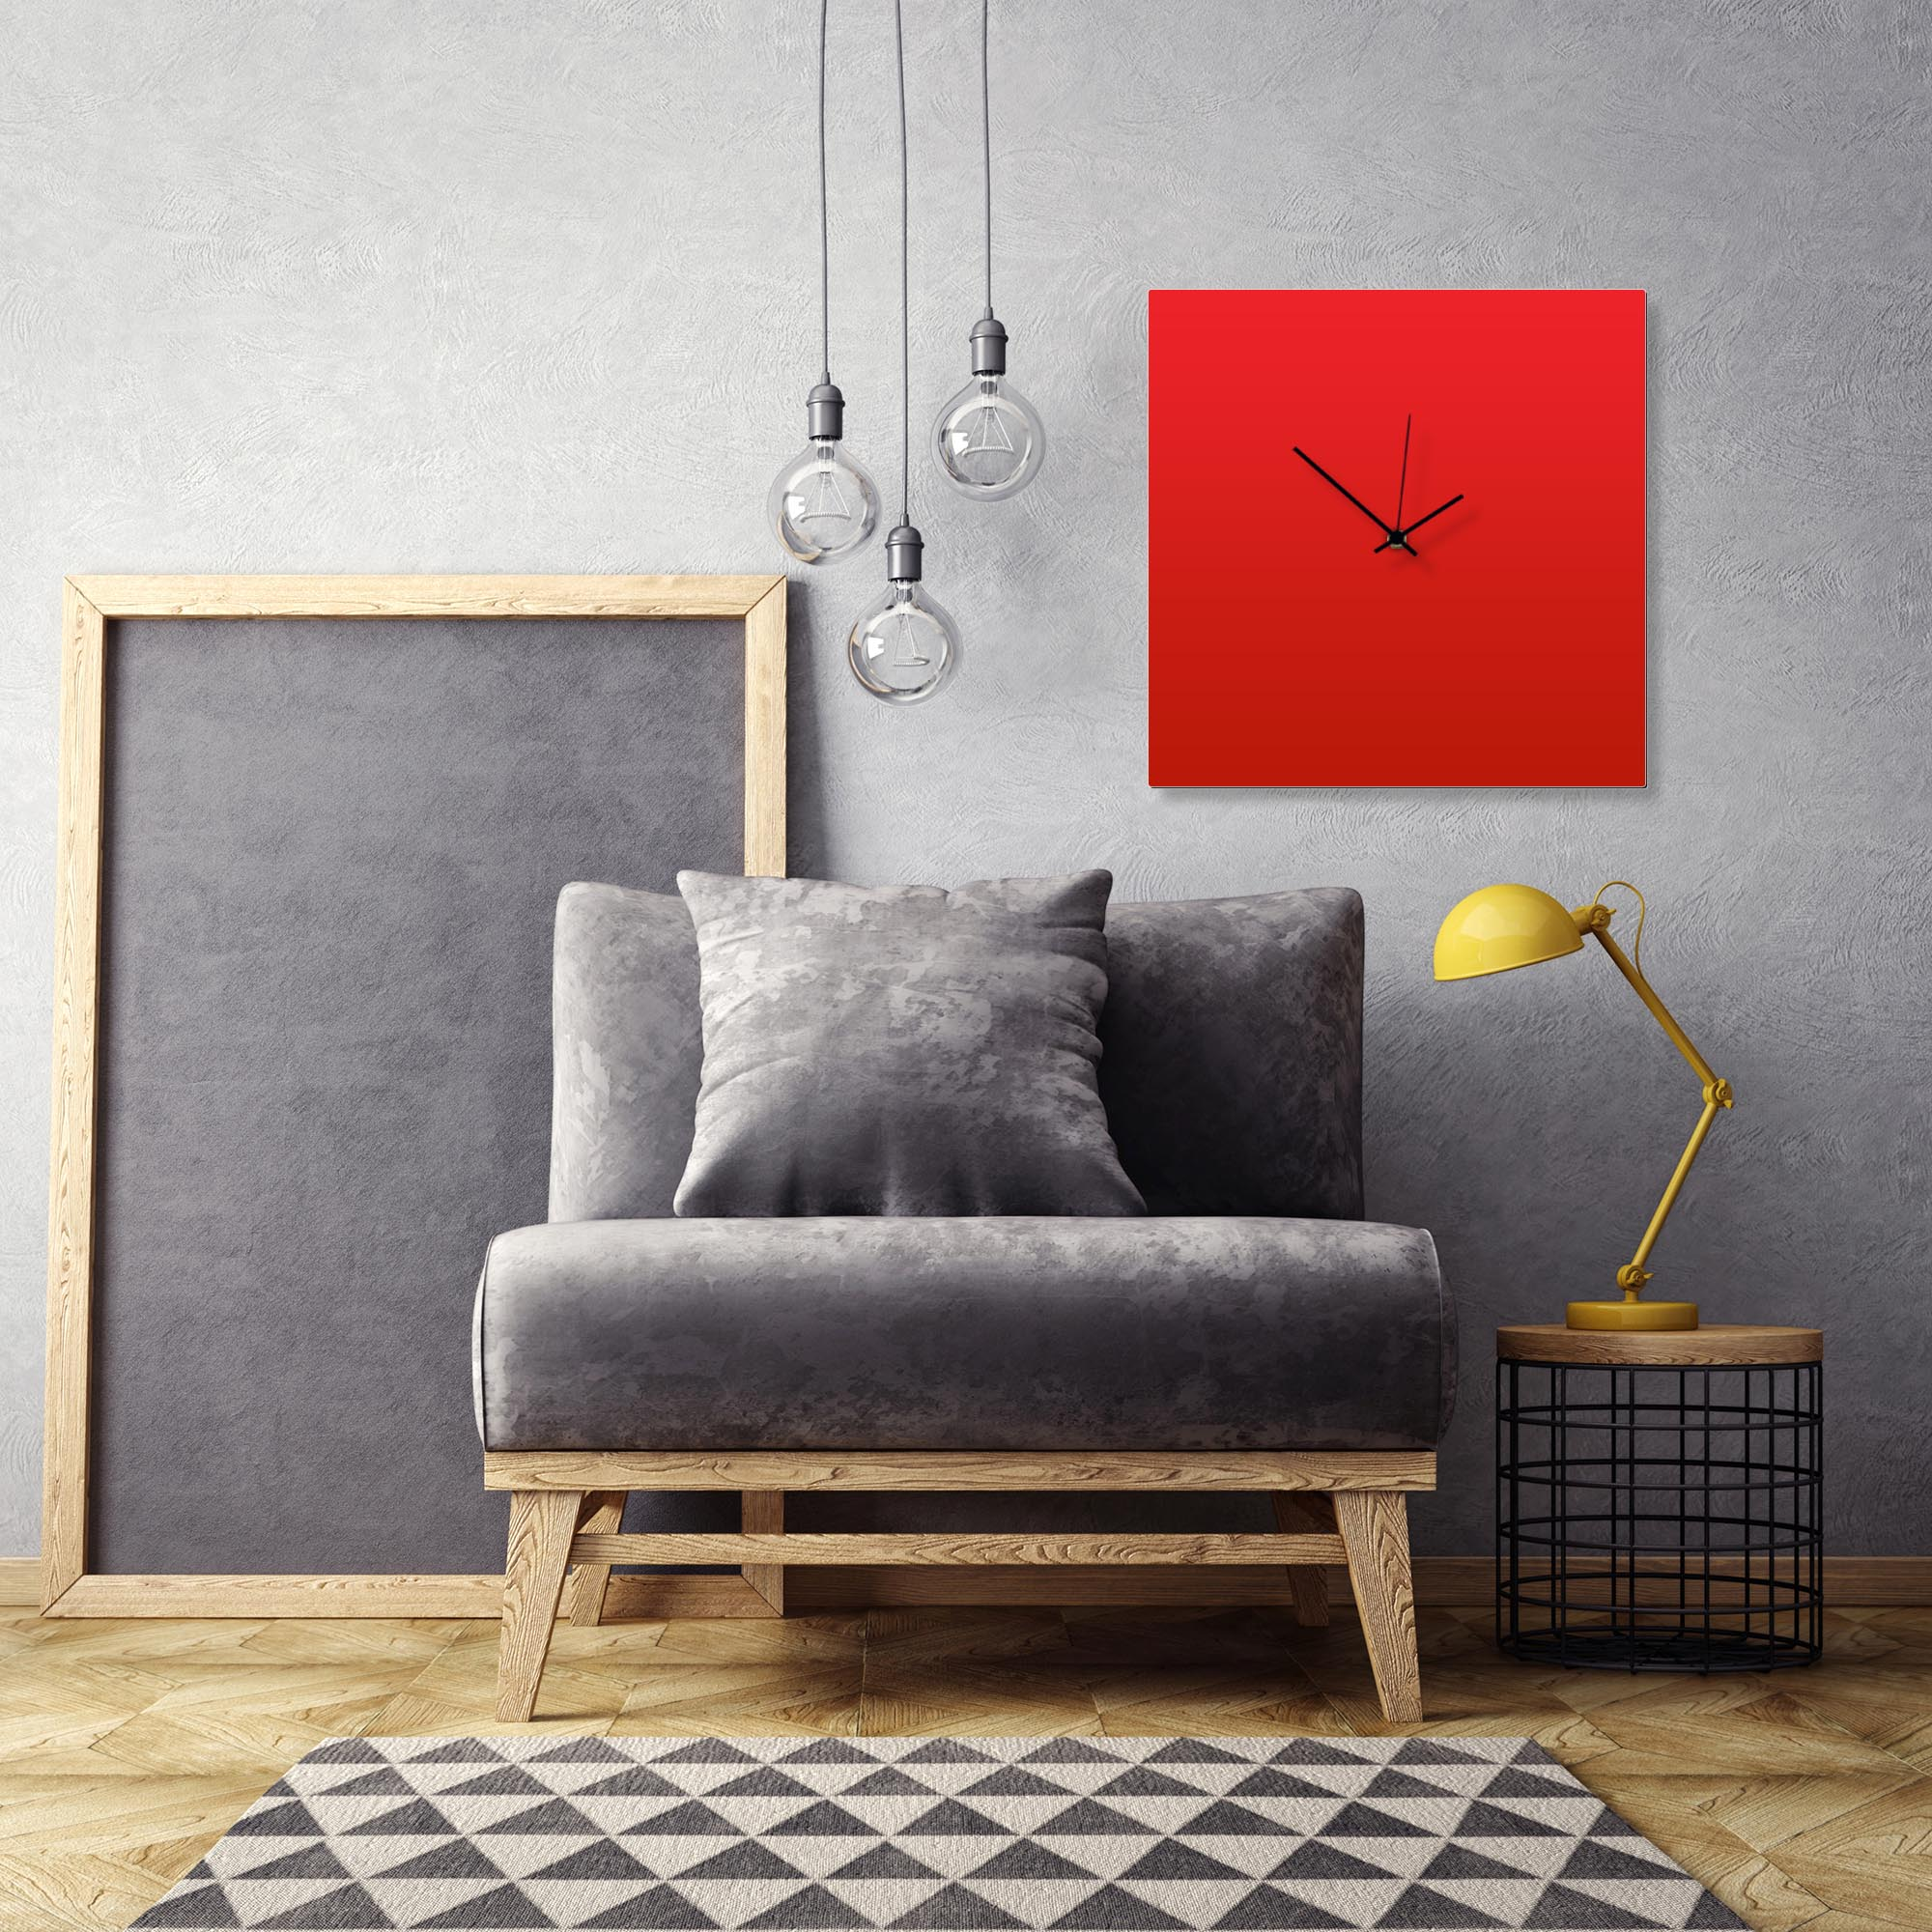 Redout Black Square Clock Large by Adam Schwoeppe Contemporary Clock on Aluminum Polymetal - Alternate View 1